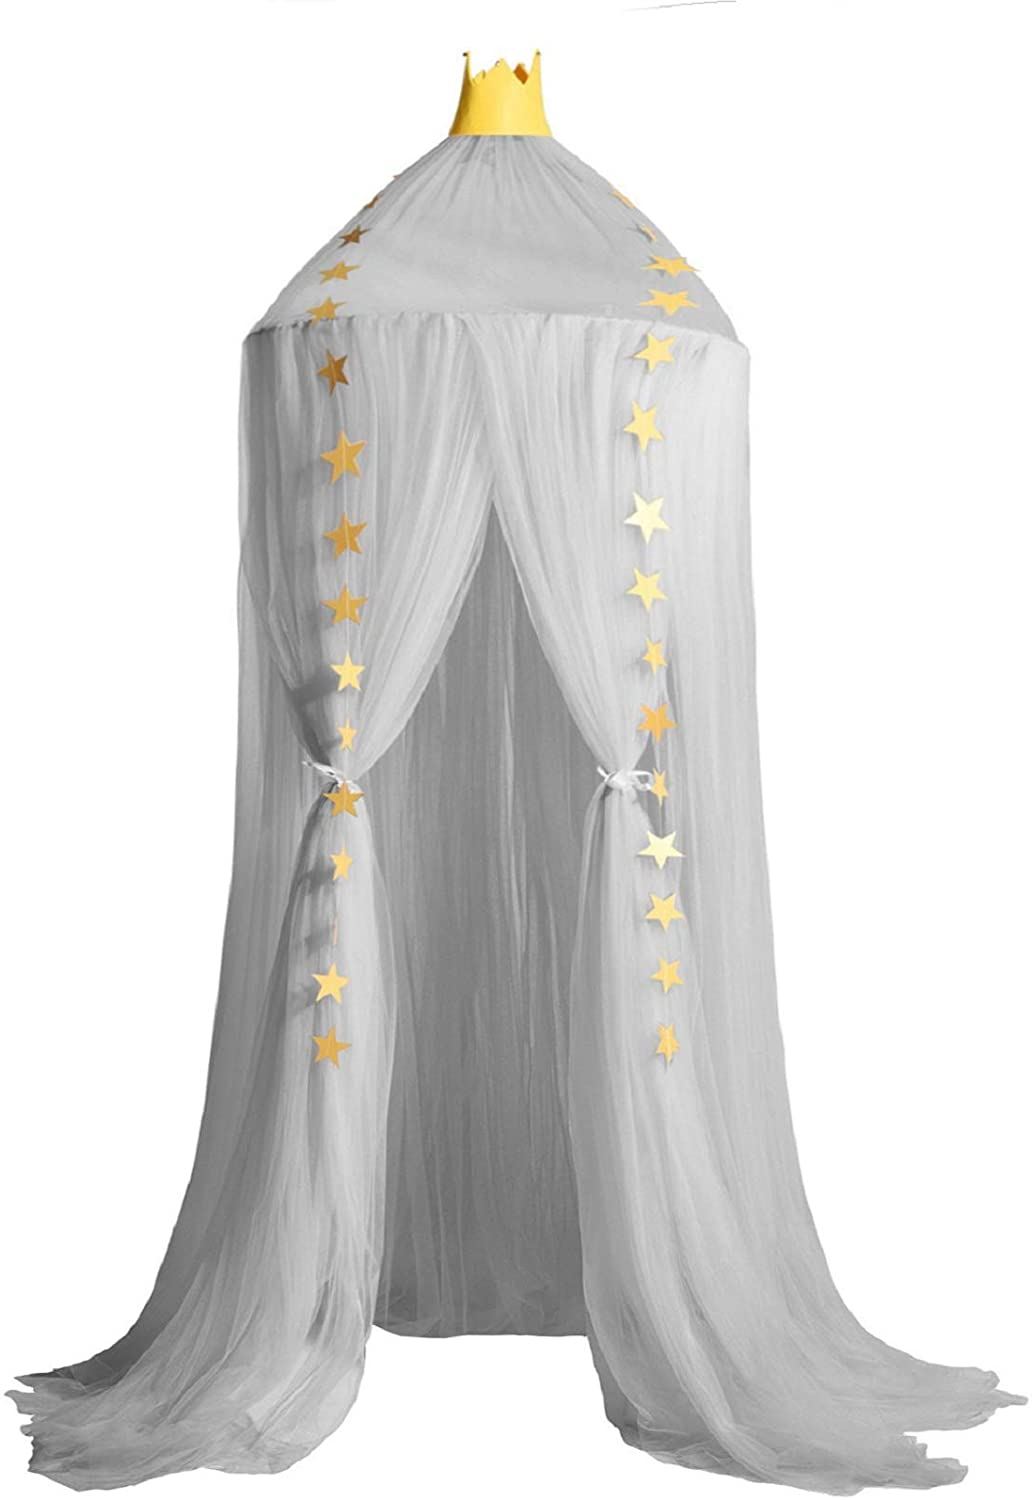 Jolitac Princess Bed Canopy for Kids Room Decor Round Lace Mosquito Net Play Tent Baby House Canopys Yarn Girls Dome Netting Curtains Girls Games House Pink Castle (Gray)